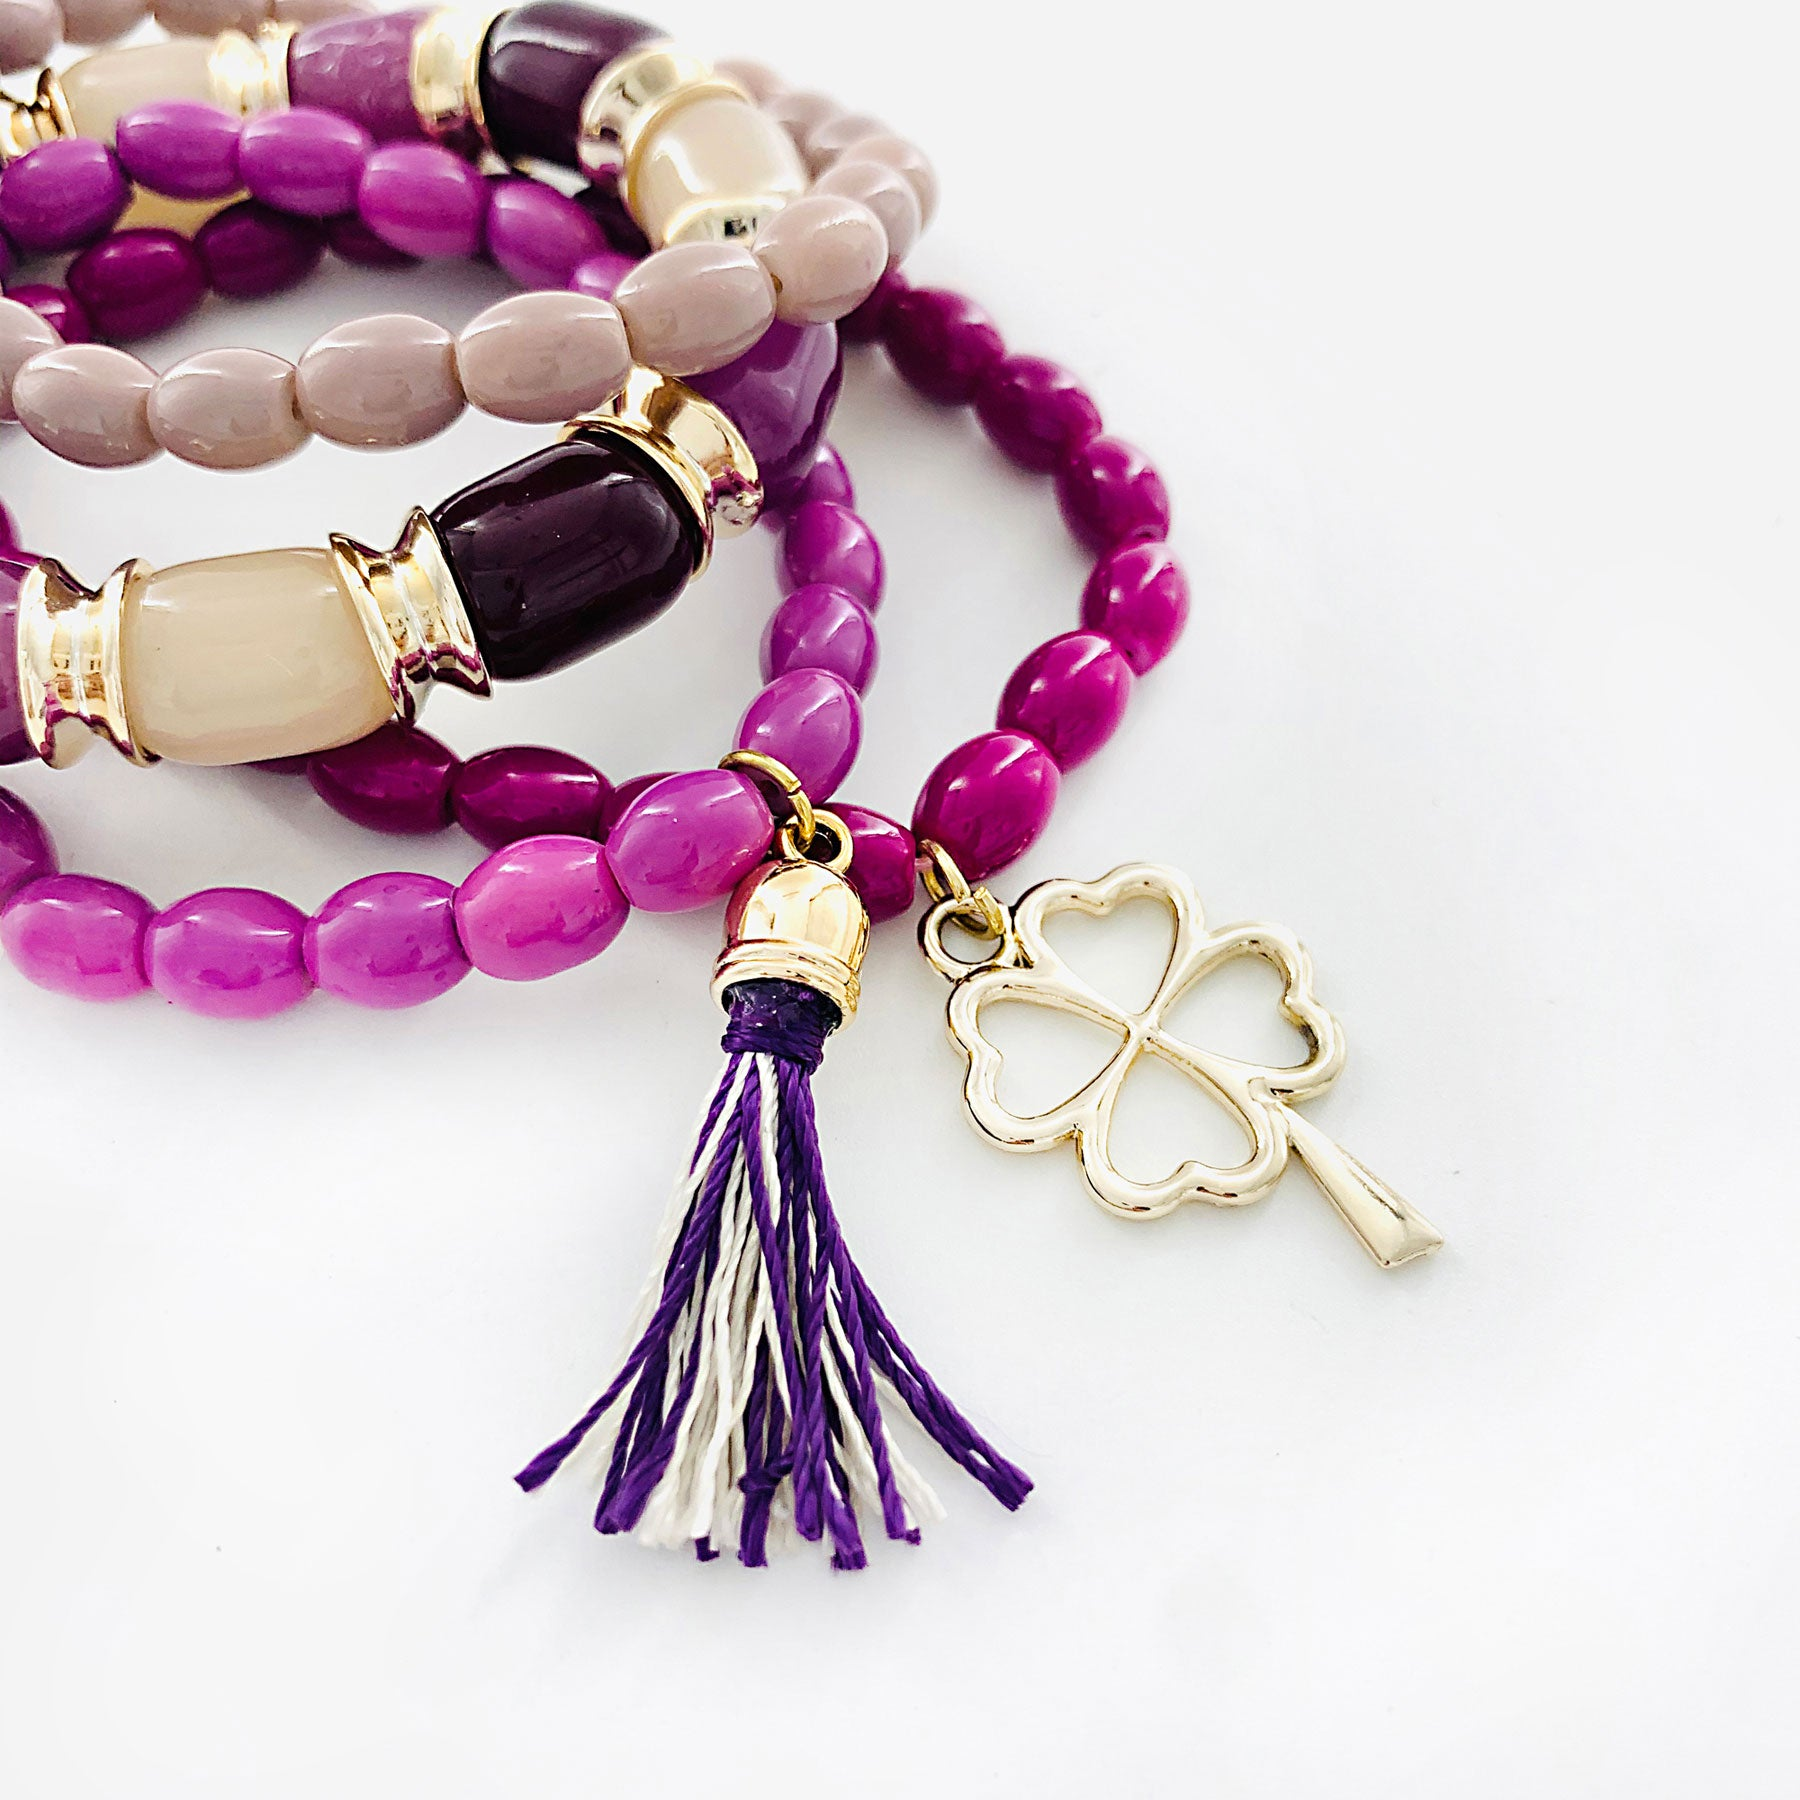 Violet and Mauve bracelet with gold clover and tassel charm